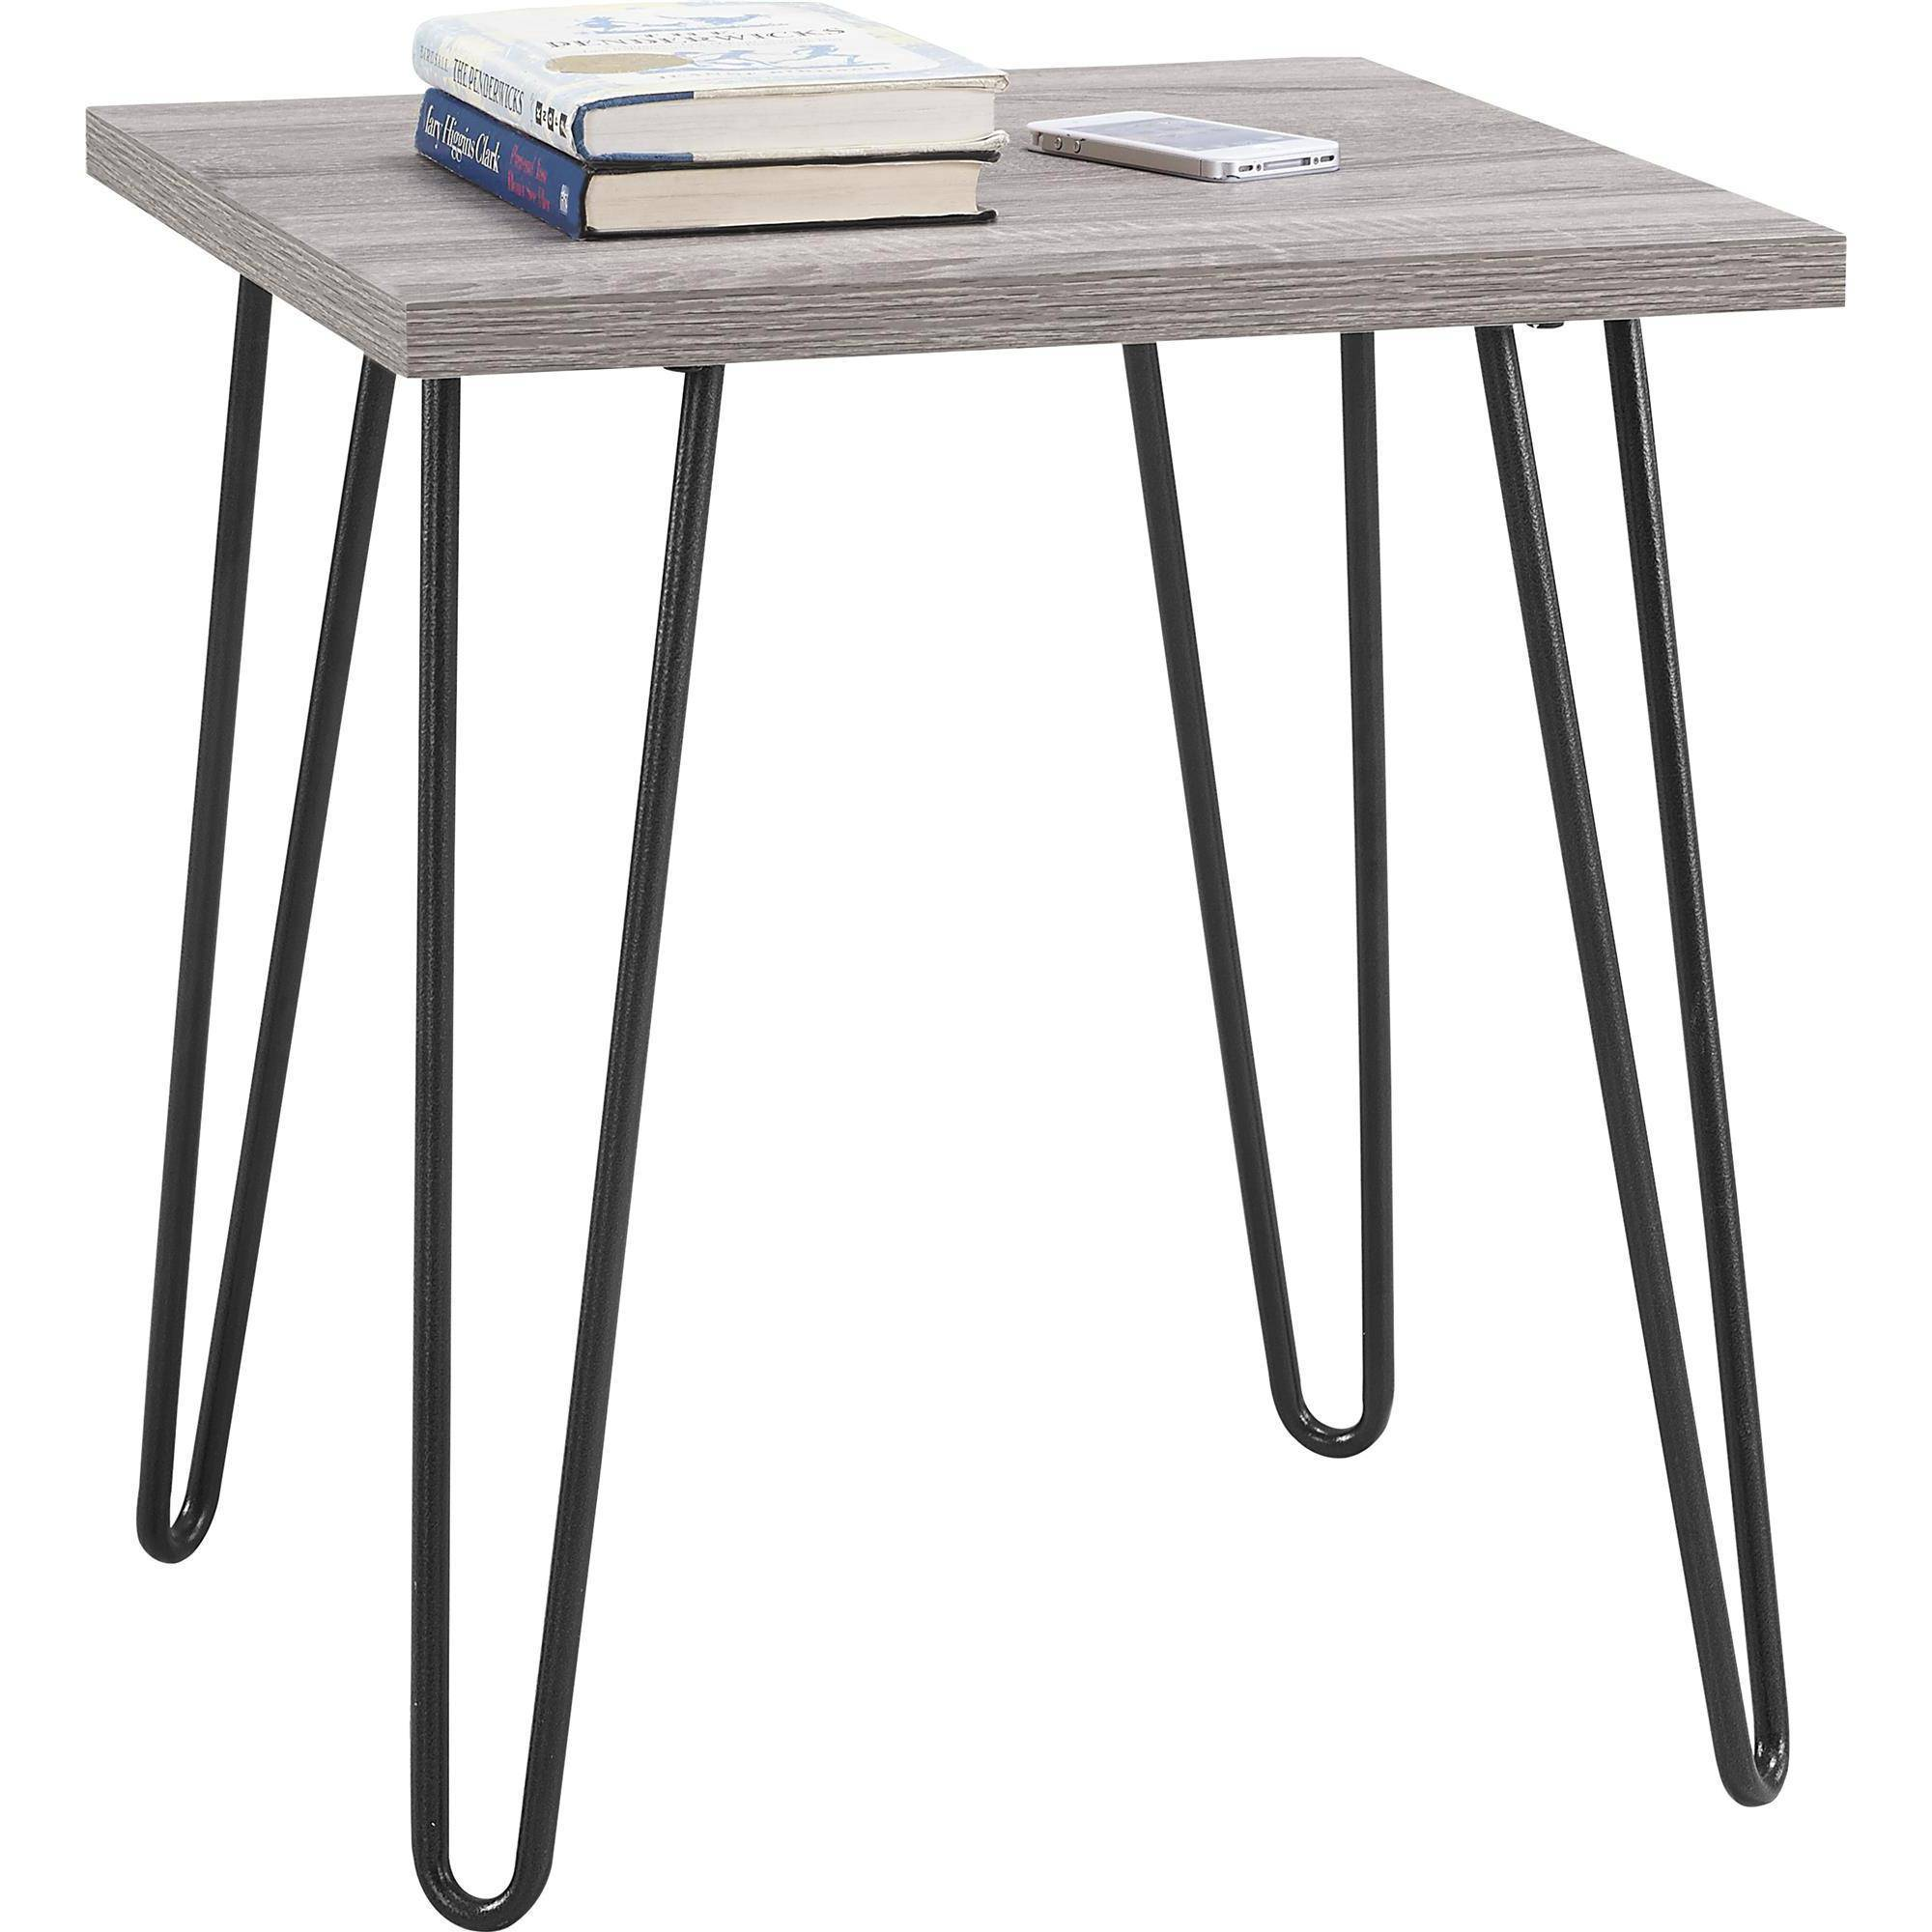 ameriwood home owen retro end table espresso teal hairpin leg accent black iron antique circular industrial look tables led night light pottery barn drum metal garden decor